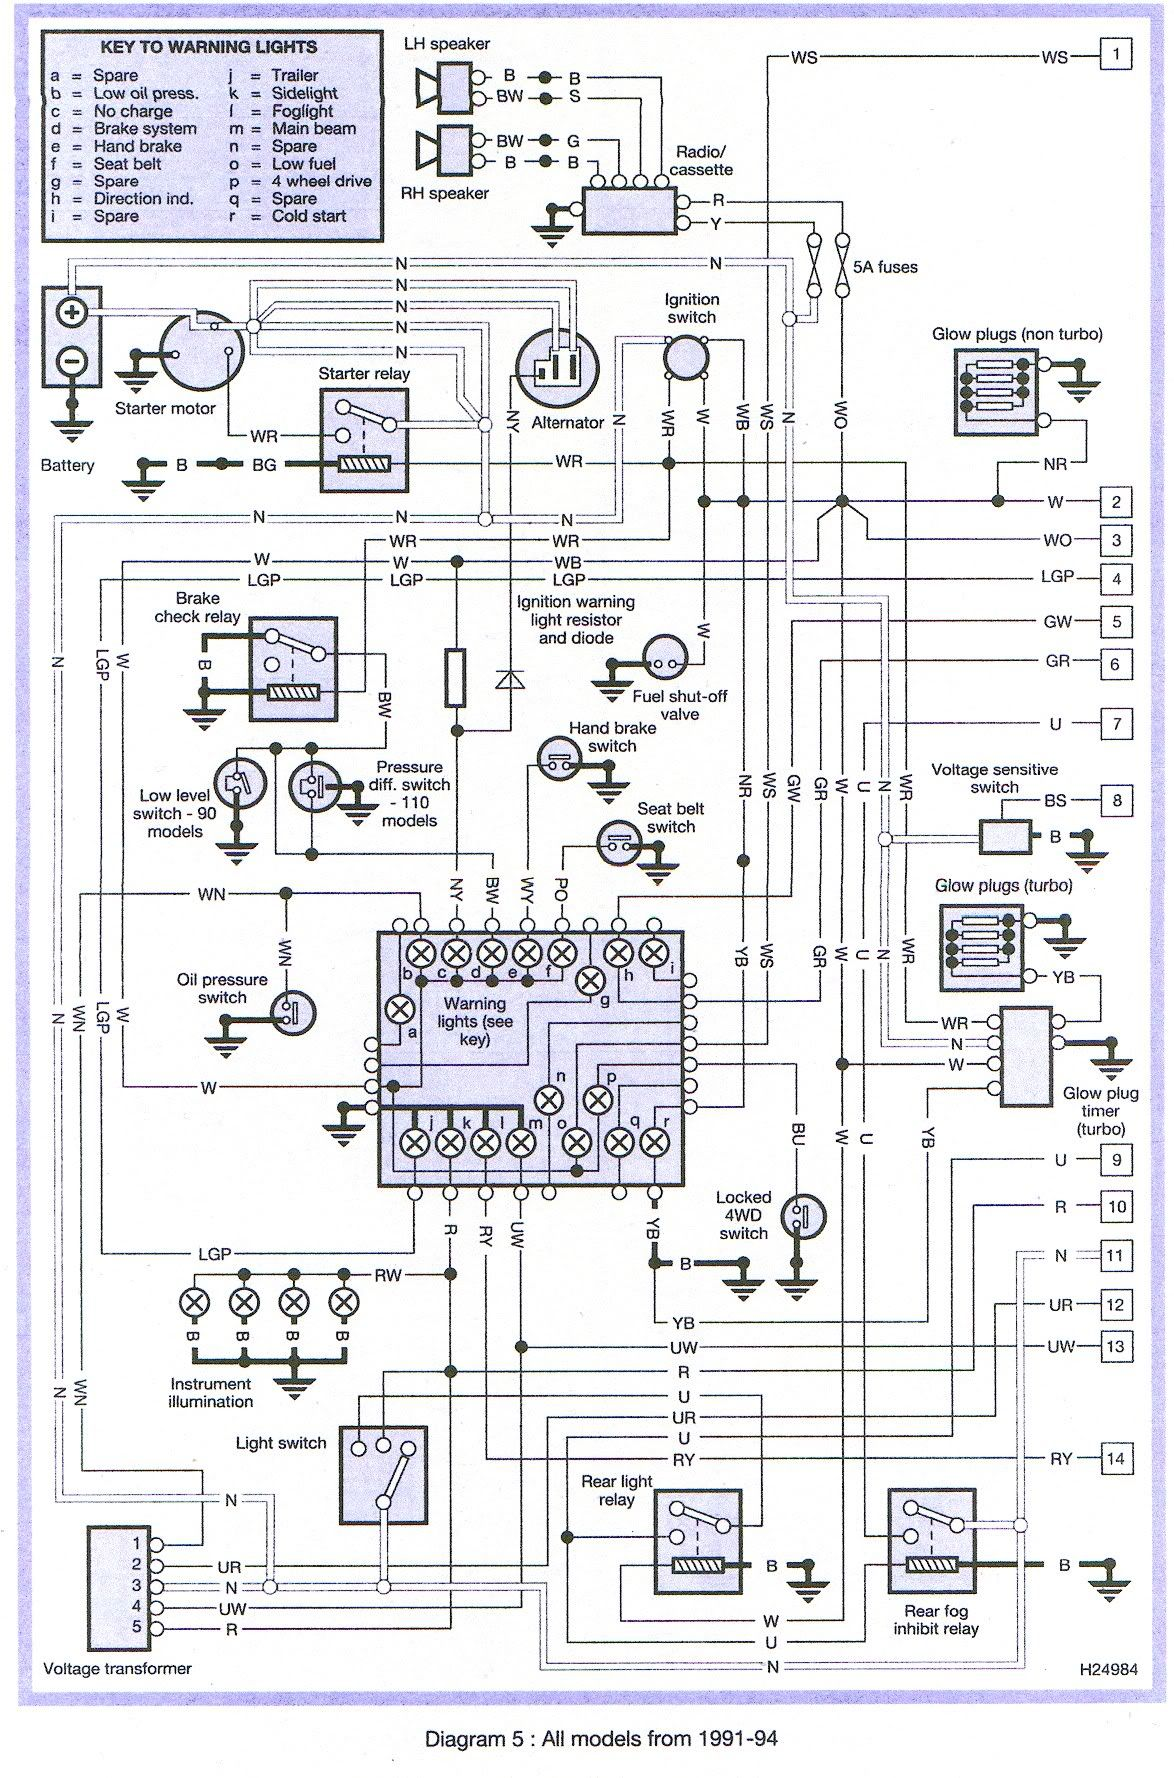 medium resolution of 96 range rover engine diagram share circuit diagrams 96 land rover discovery wiring diagram wiring diagram